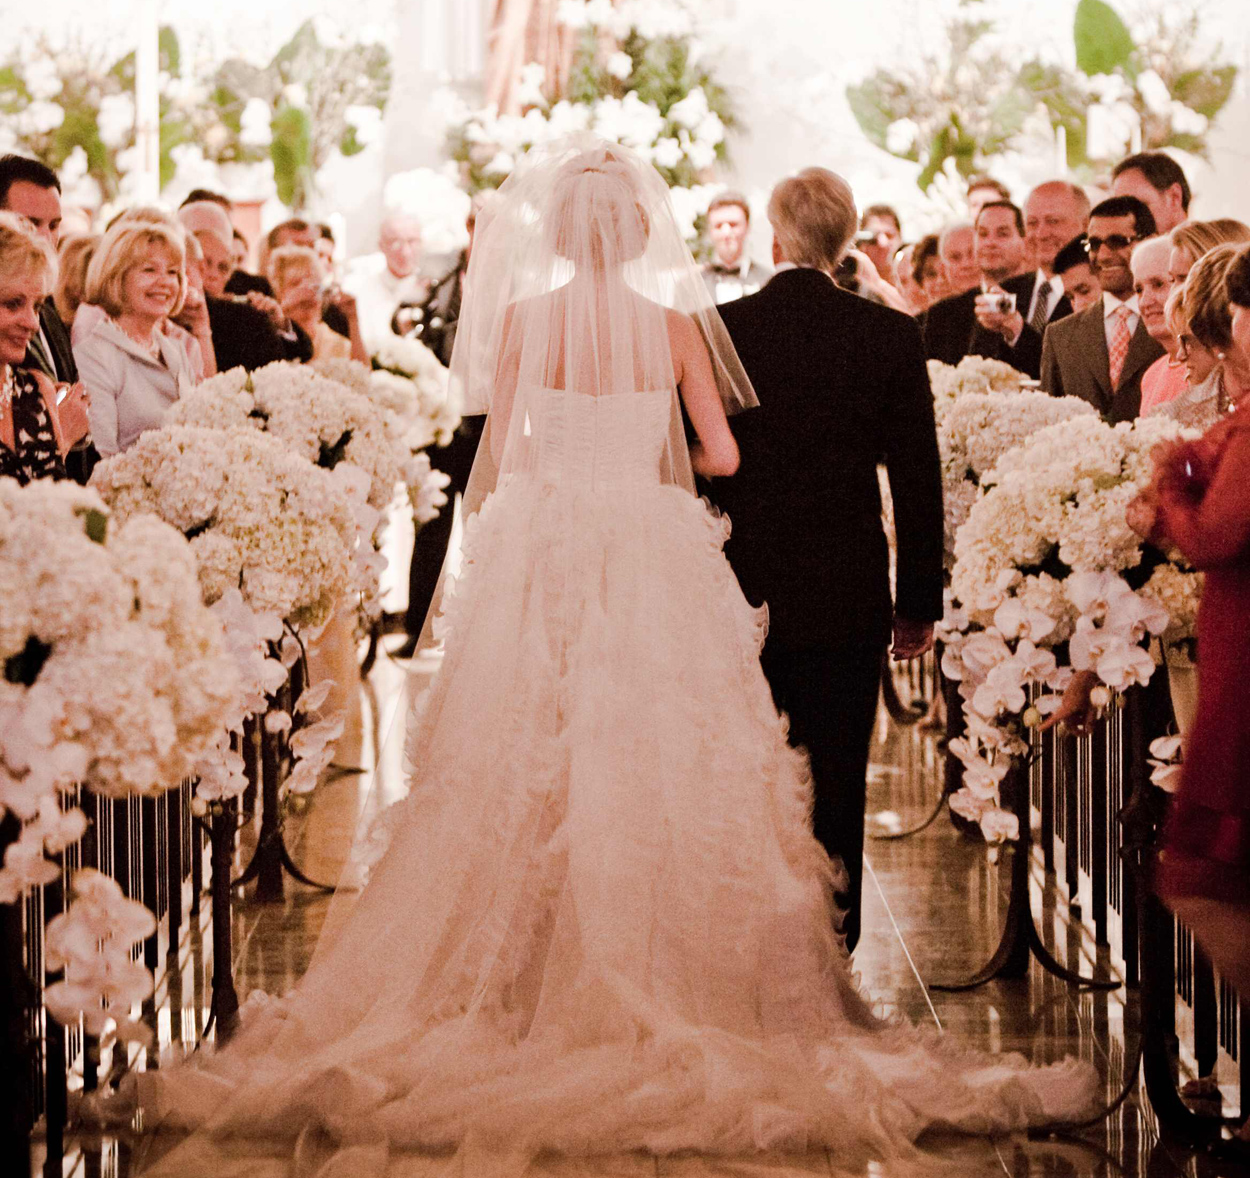 father walking his daughter down the aisle during a church wedding